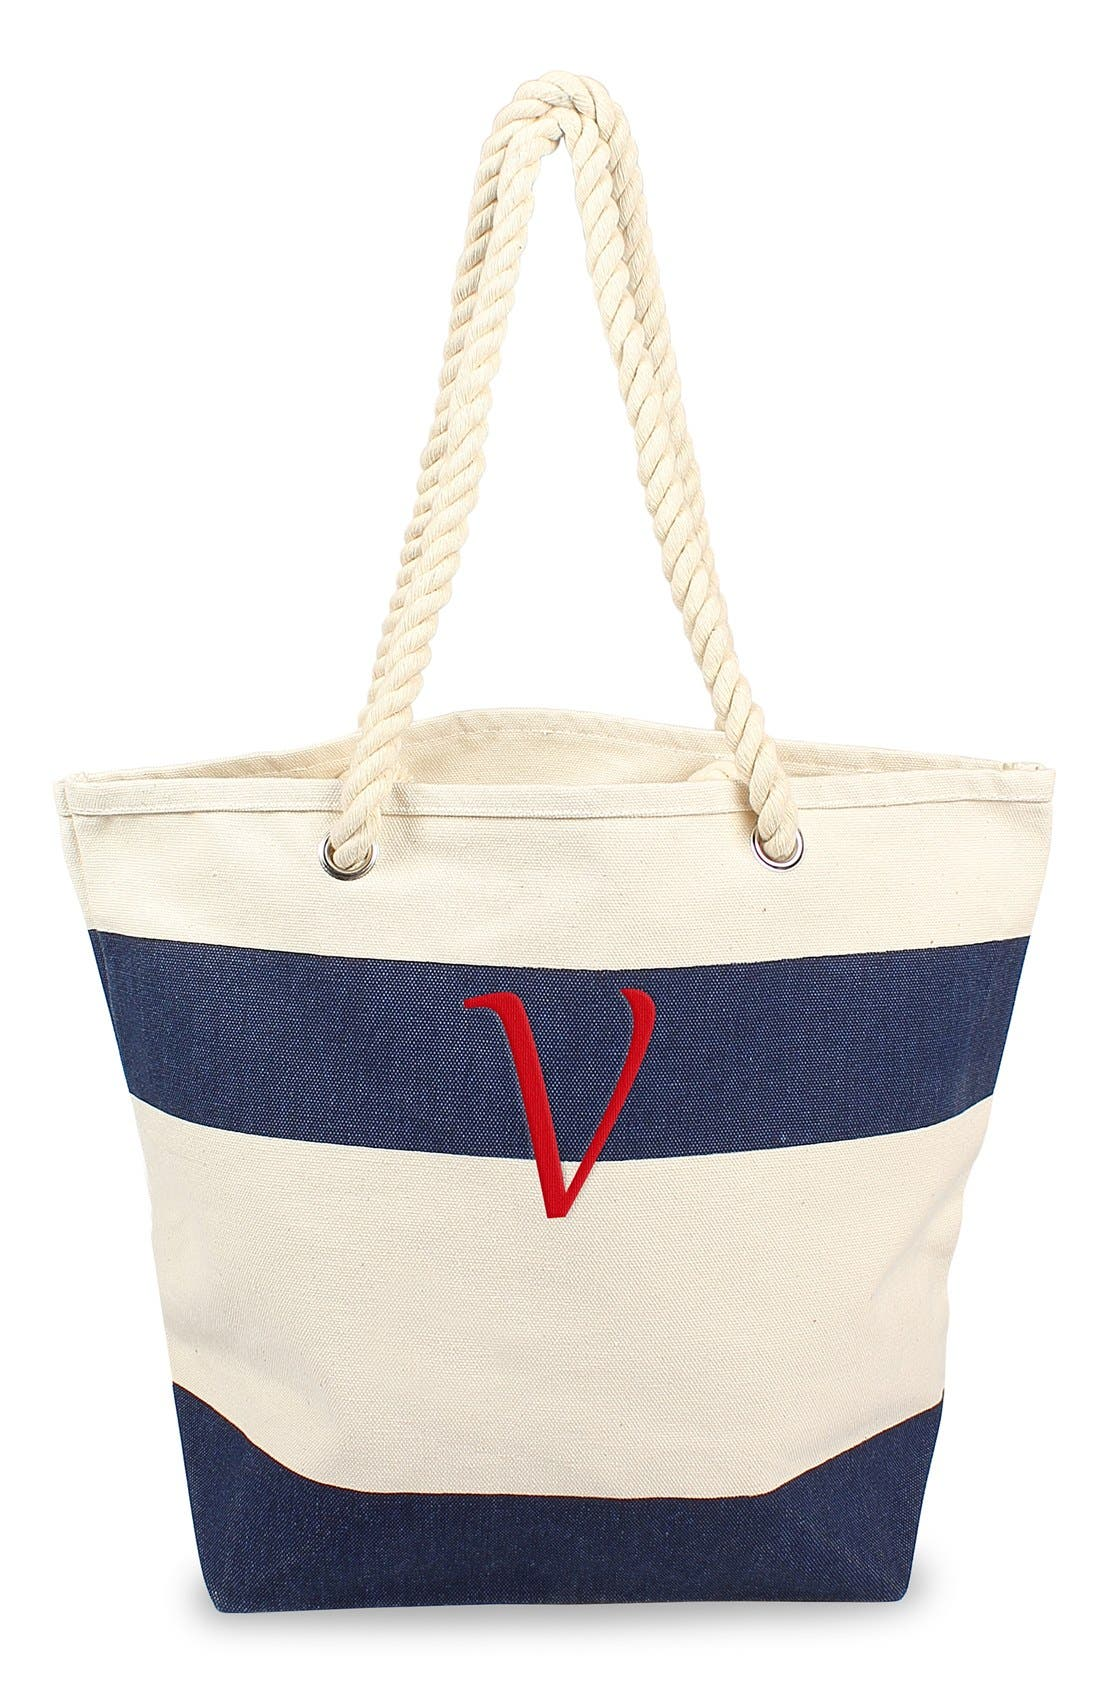 CATHY'S CONCEPTS Monogram Stripe Canvas Tote, Main, color, 432